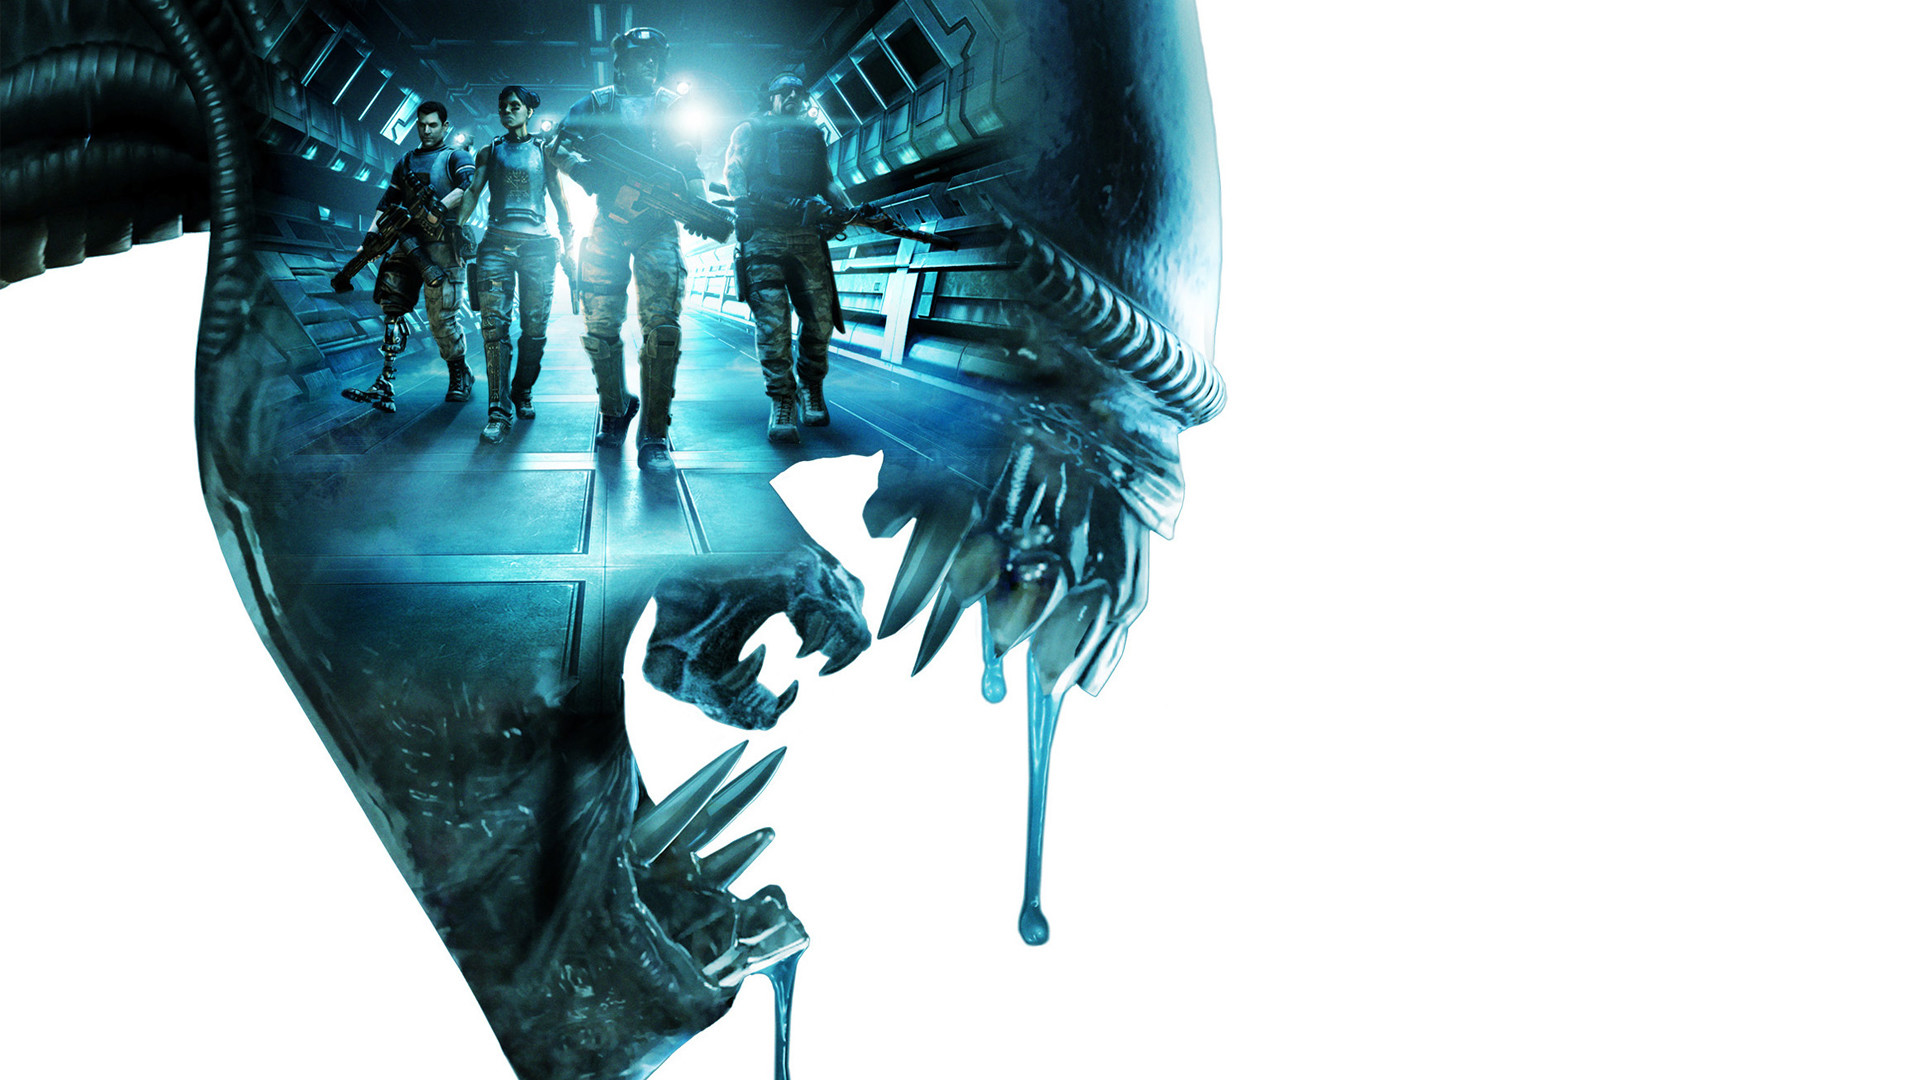 2013 Aliens Colonial Marines Game Wallpapers   HD Wallpapers